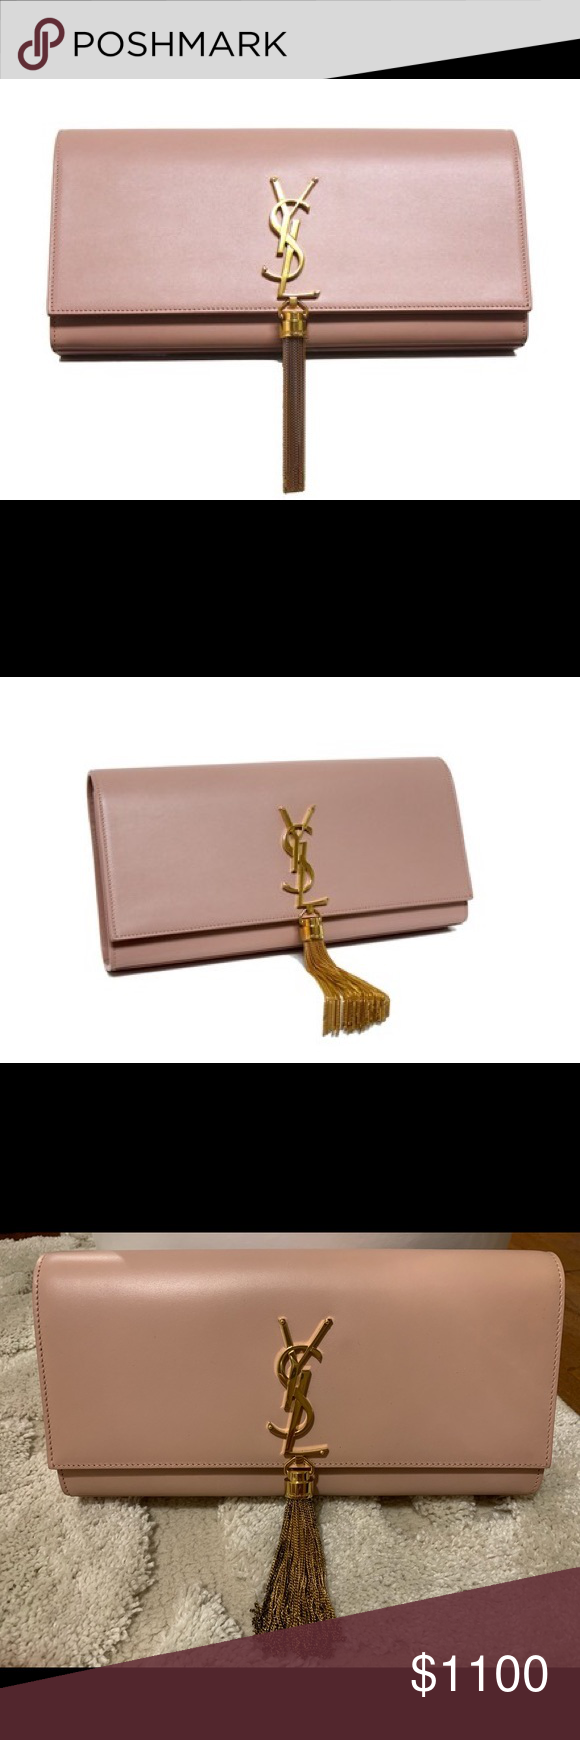 YSL Medium Kate Chain Bag I bought this bag in the end of